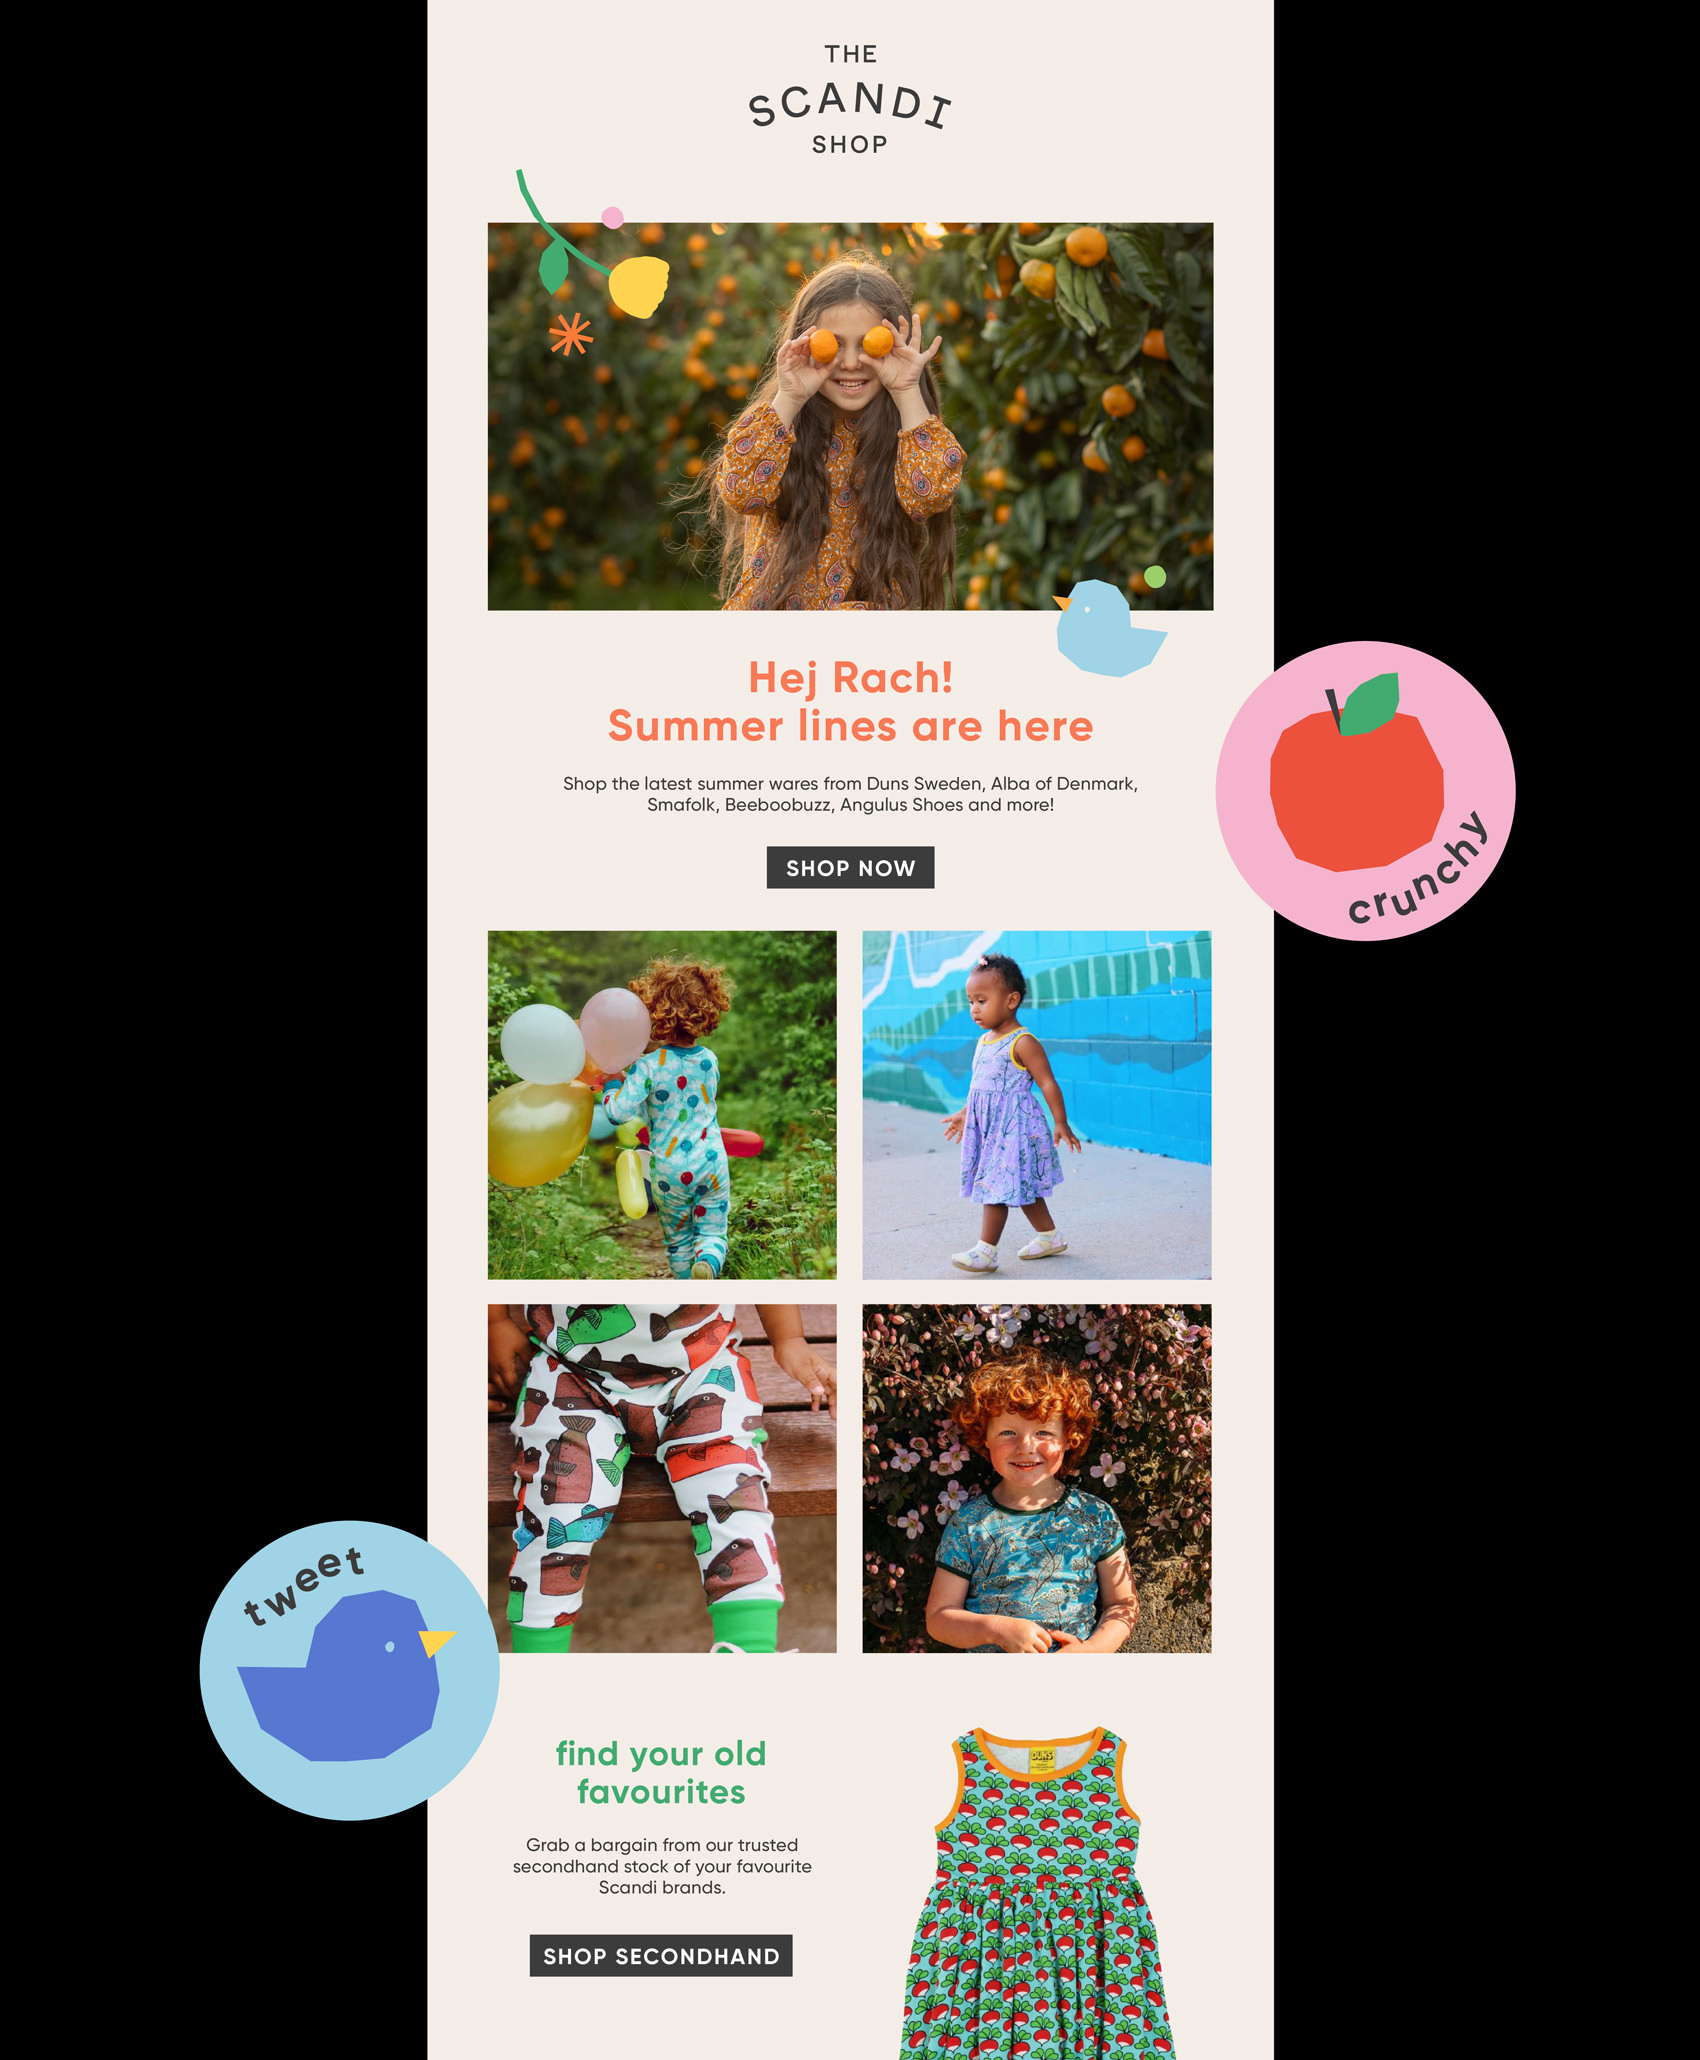 the scandi shop email design